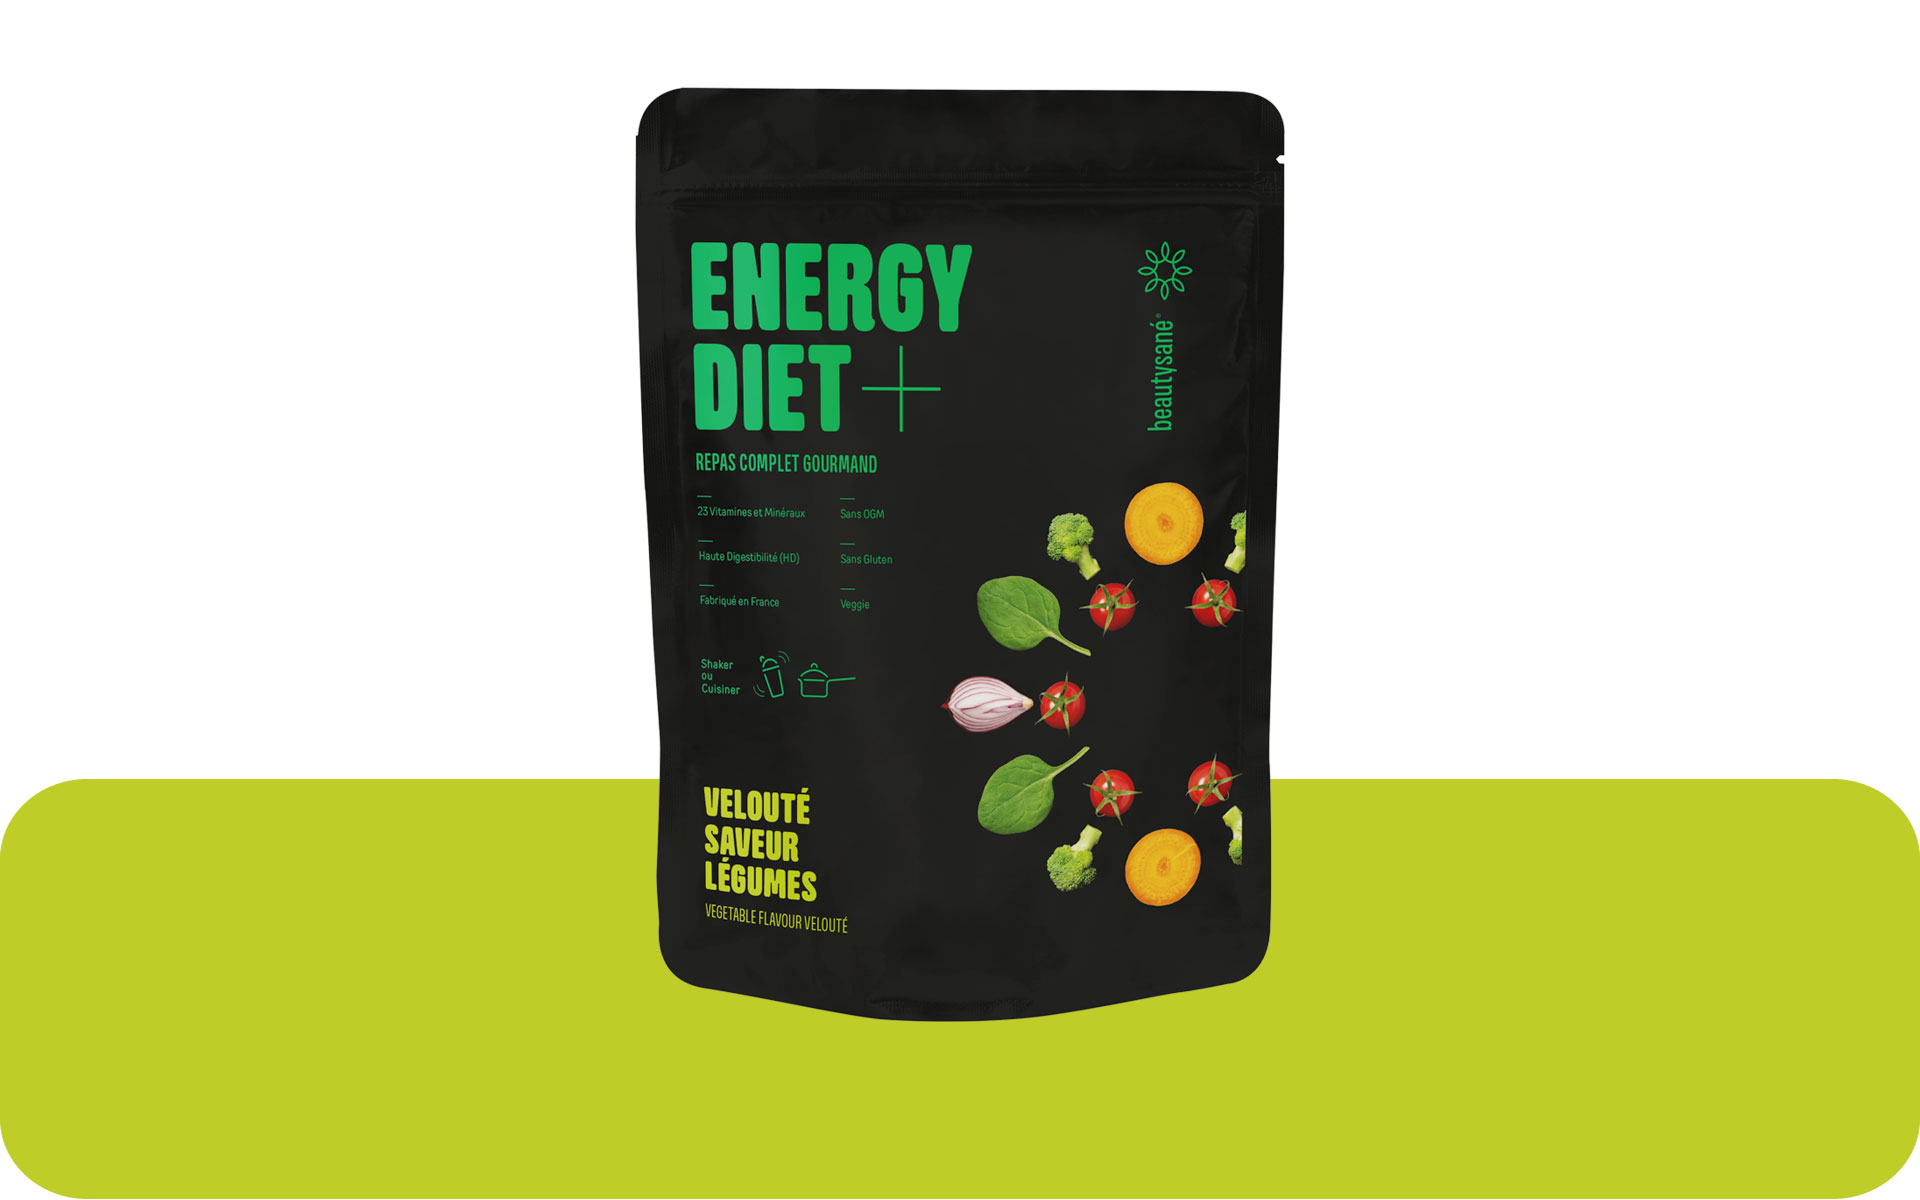 Energy Diet Plus sabor legumbres